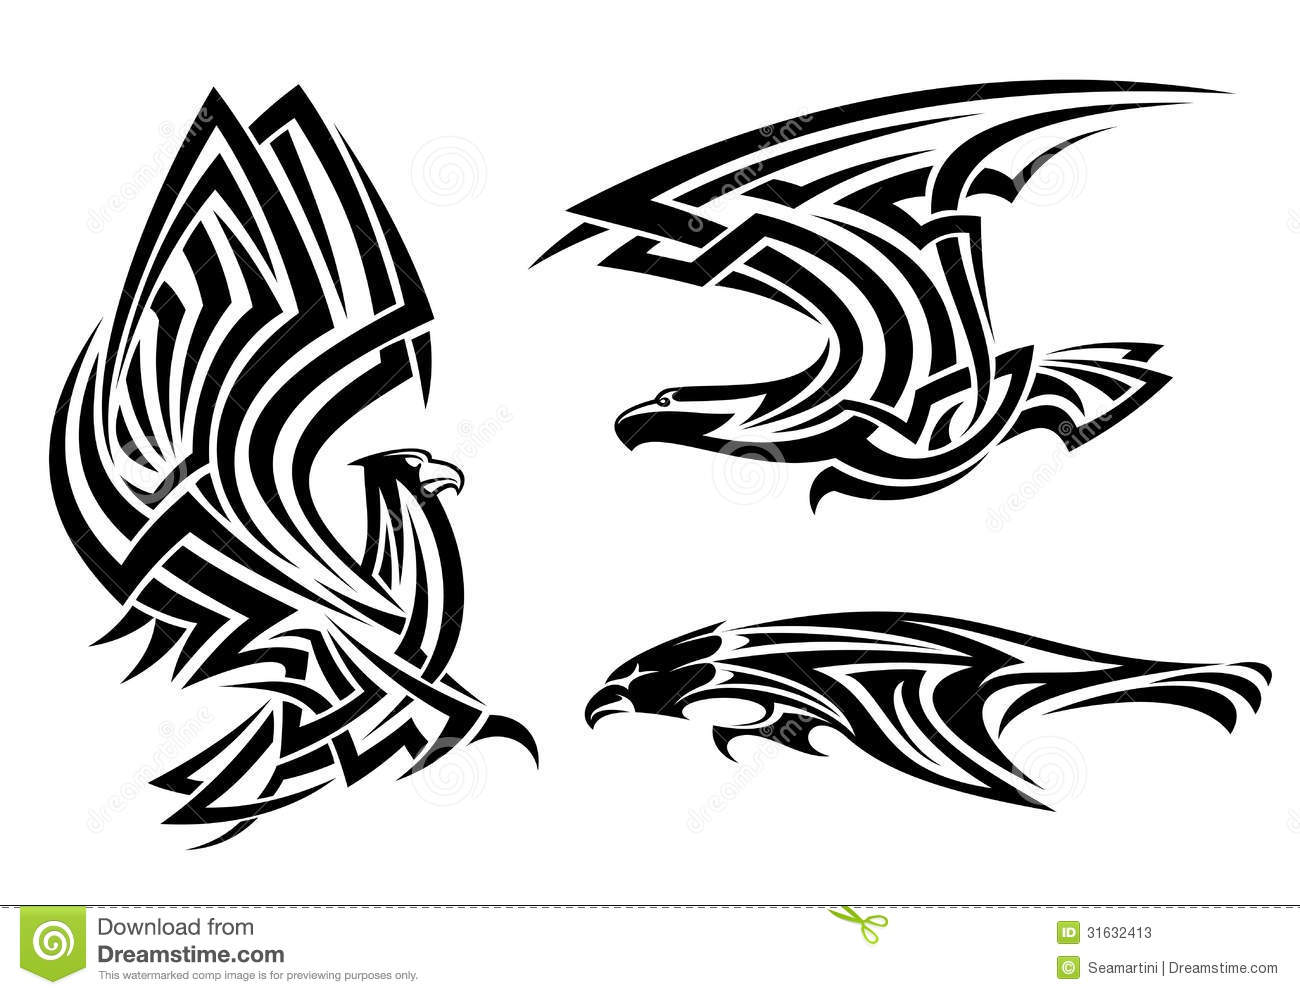 Tribal eagle, hawk and falcon set for tattoo or heraldry design.